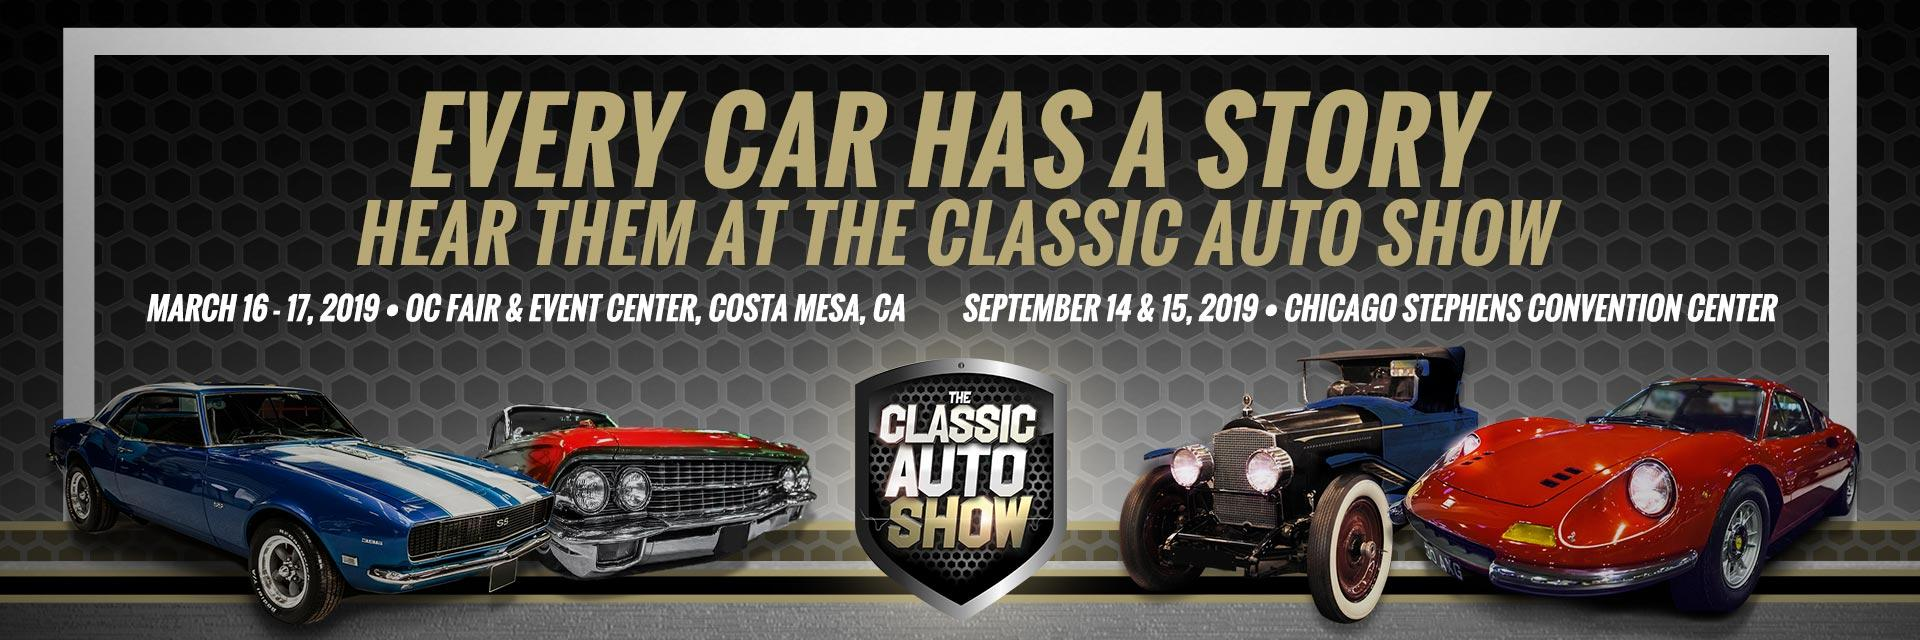 The Florida Classic Car Show